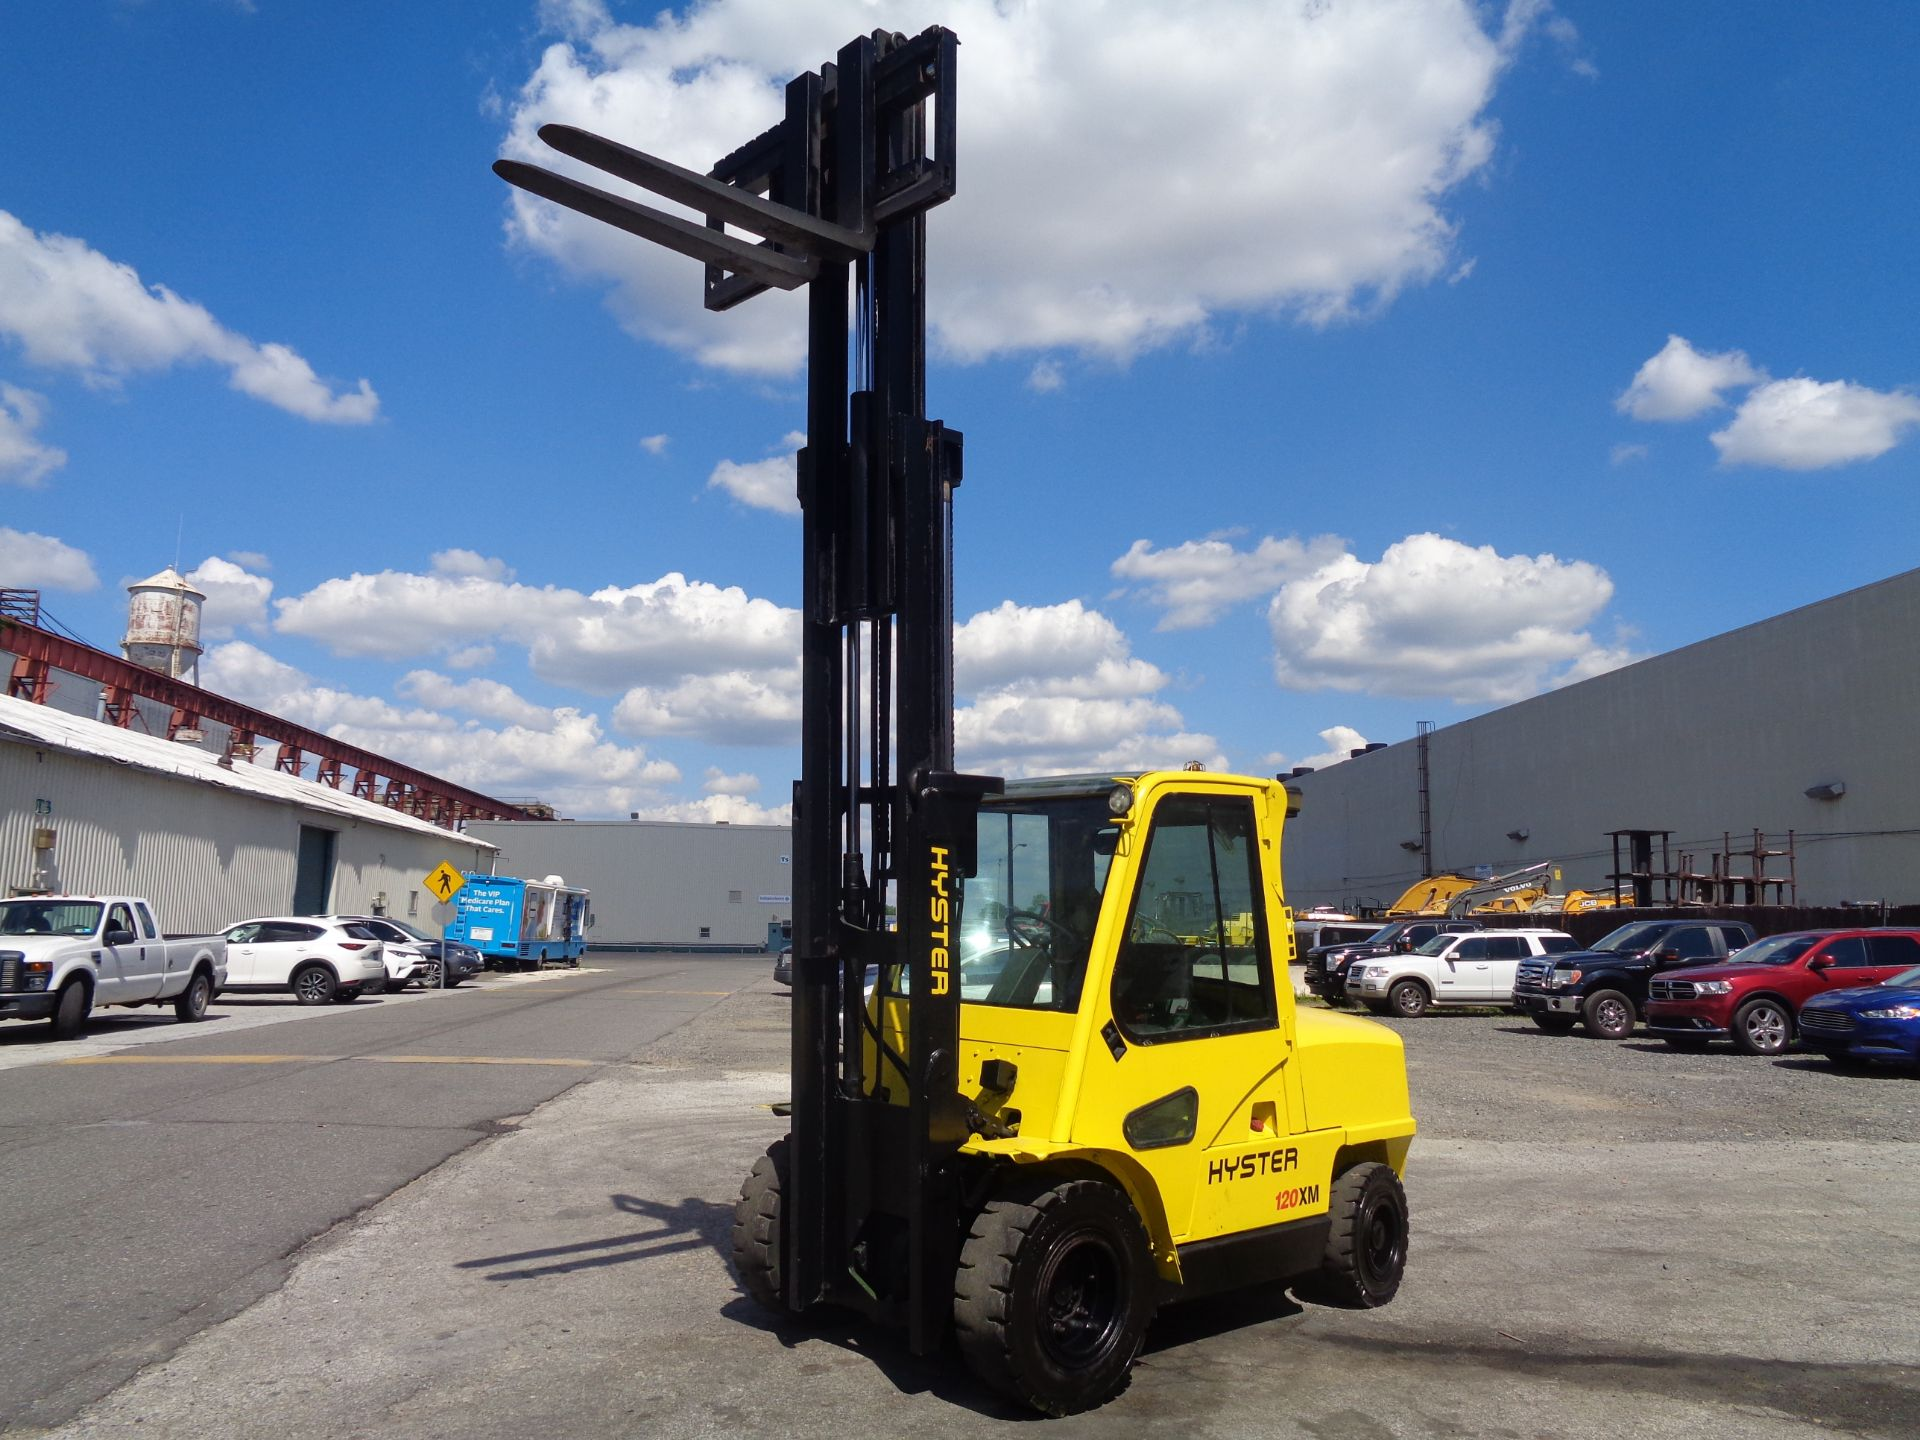 Hyster H120XL 12,000lb Forklift - Image 11 of 15